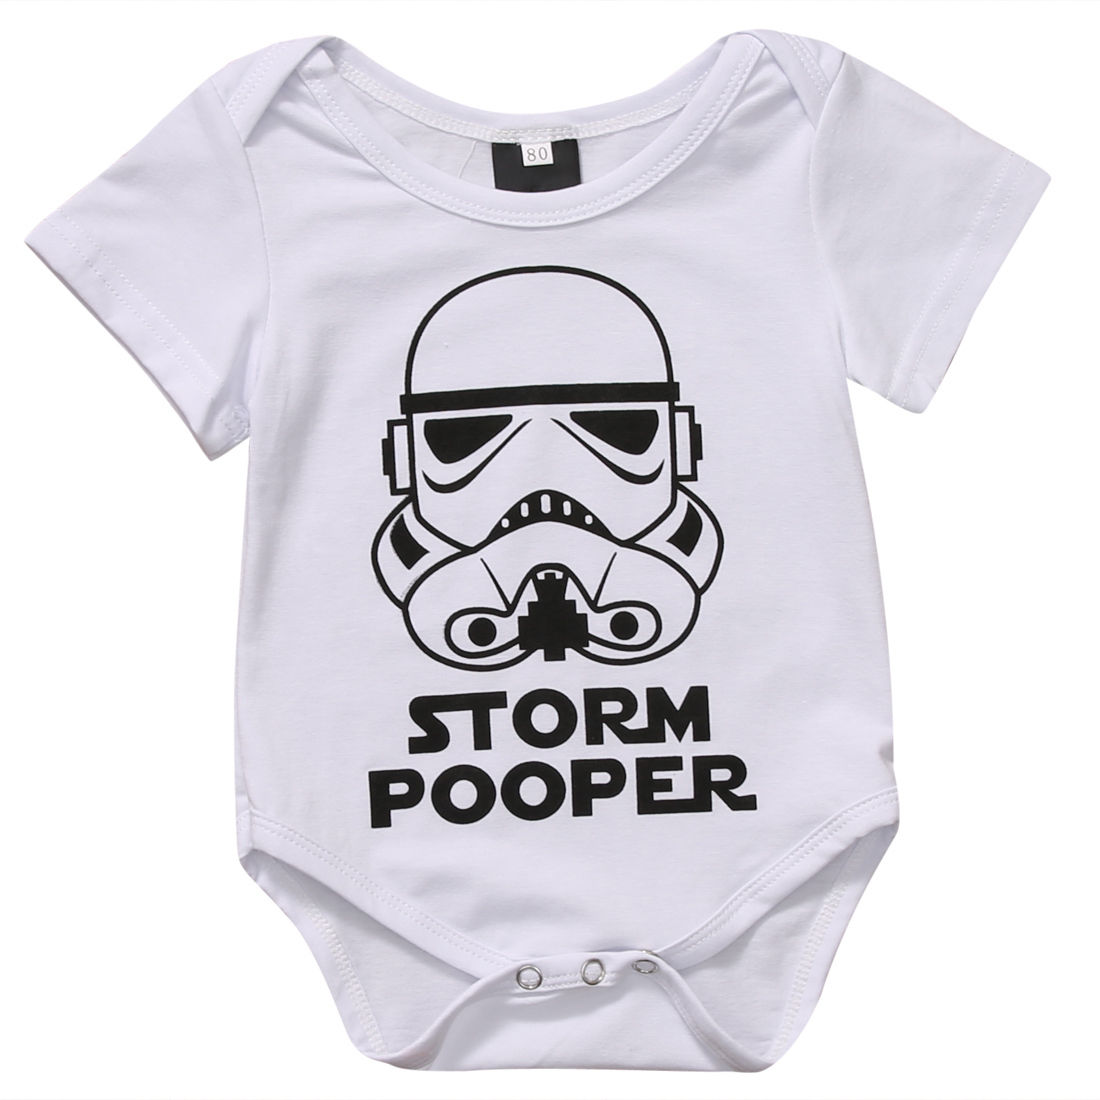 0-18M Infant Newborn Baby Boy Girl Storm Pooper Short Sleeve Cotton   Romper   Jumpsuit Playsuit Tops Summer Clothes